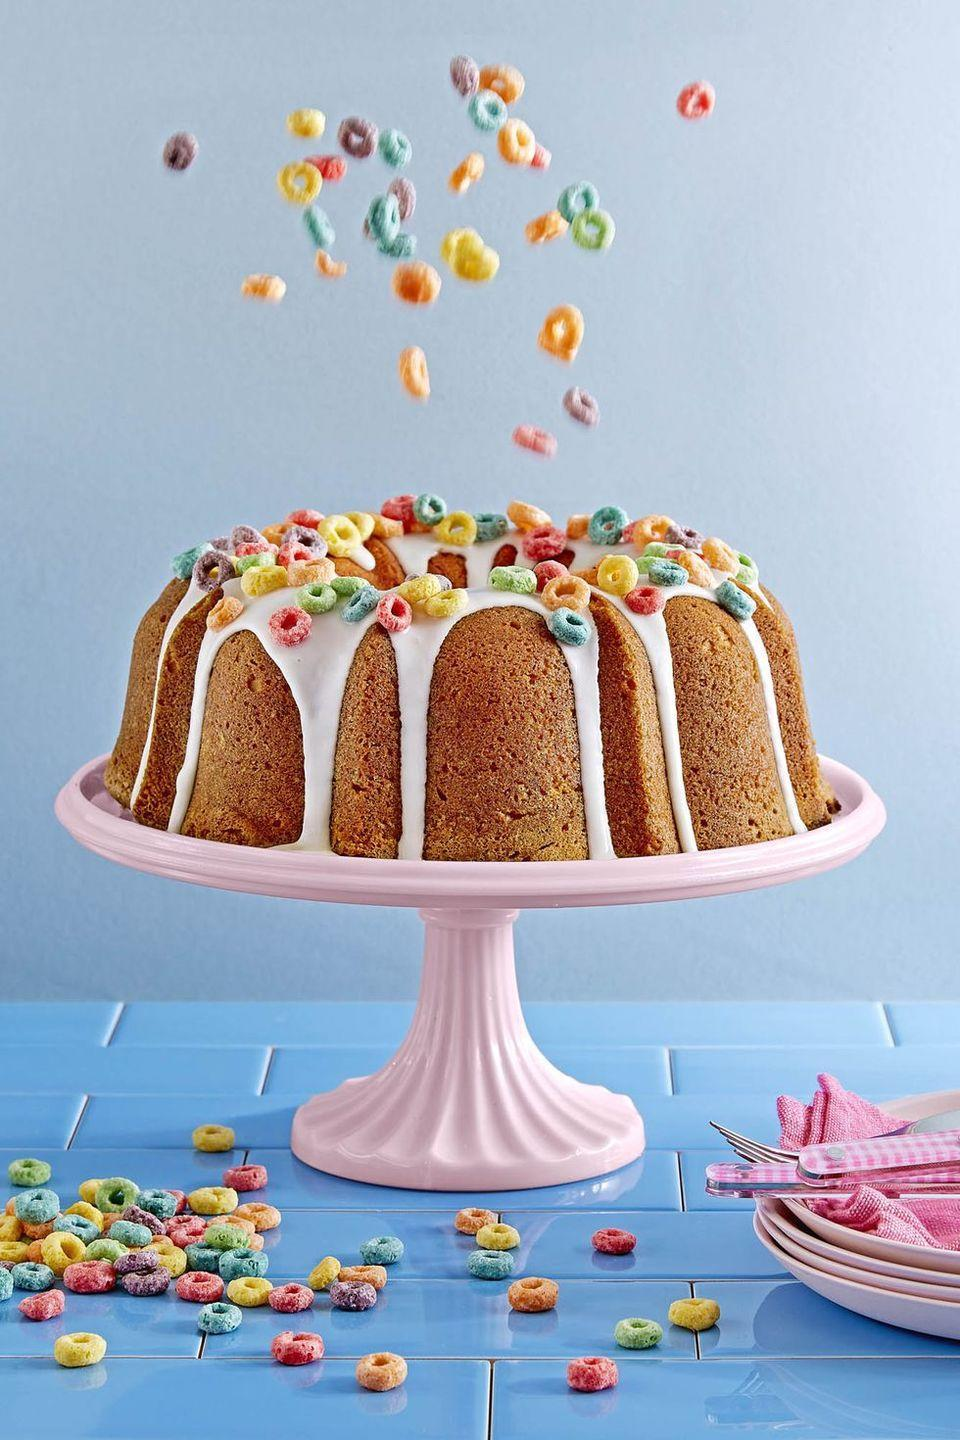 "<p>Since this bundt cake is topped with a Froot Loops streusel, you can eat it for breakfast ... right? Right. </p><p><em><a href=""https://www.countryliving.com/food-drinks/recipes/a46351/froot-loops-cake-recipe/"" rel=""nofollow noopener"" target=""_blank"" data-ylk=""slk:Get the recipe from Country Living »"" class=""link rapid-noclick-resp"">Get the recipe from Country Living »</a></em> </p>"